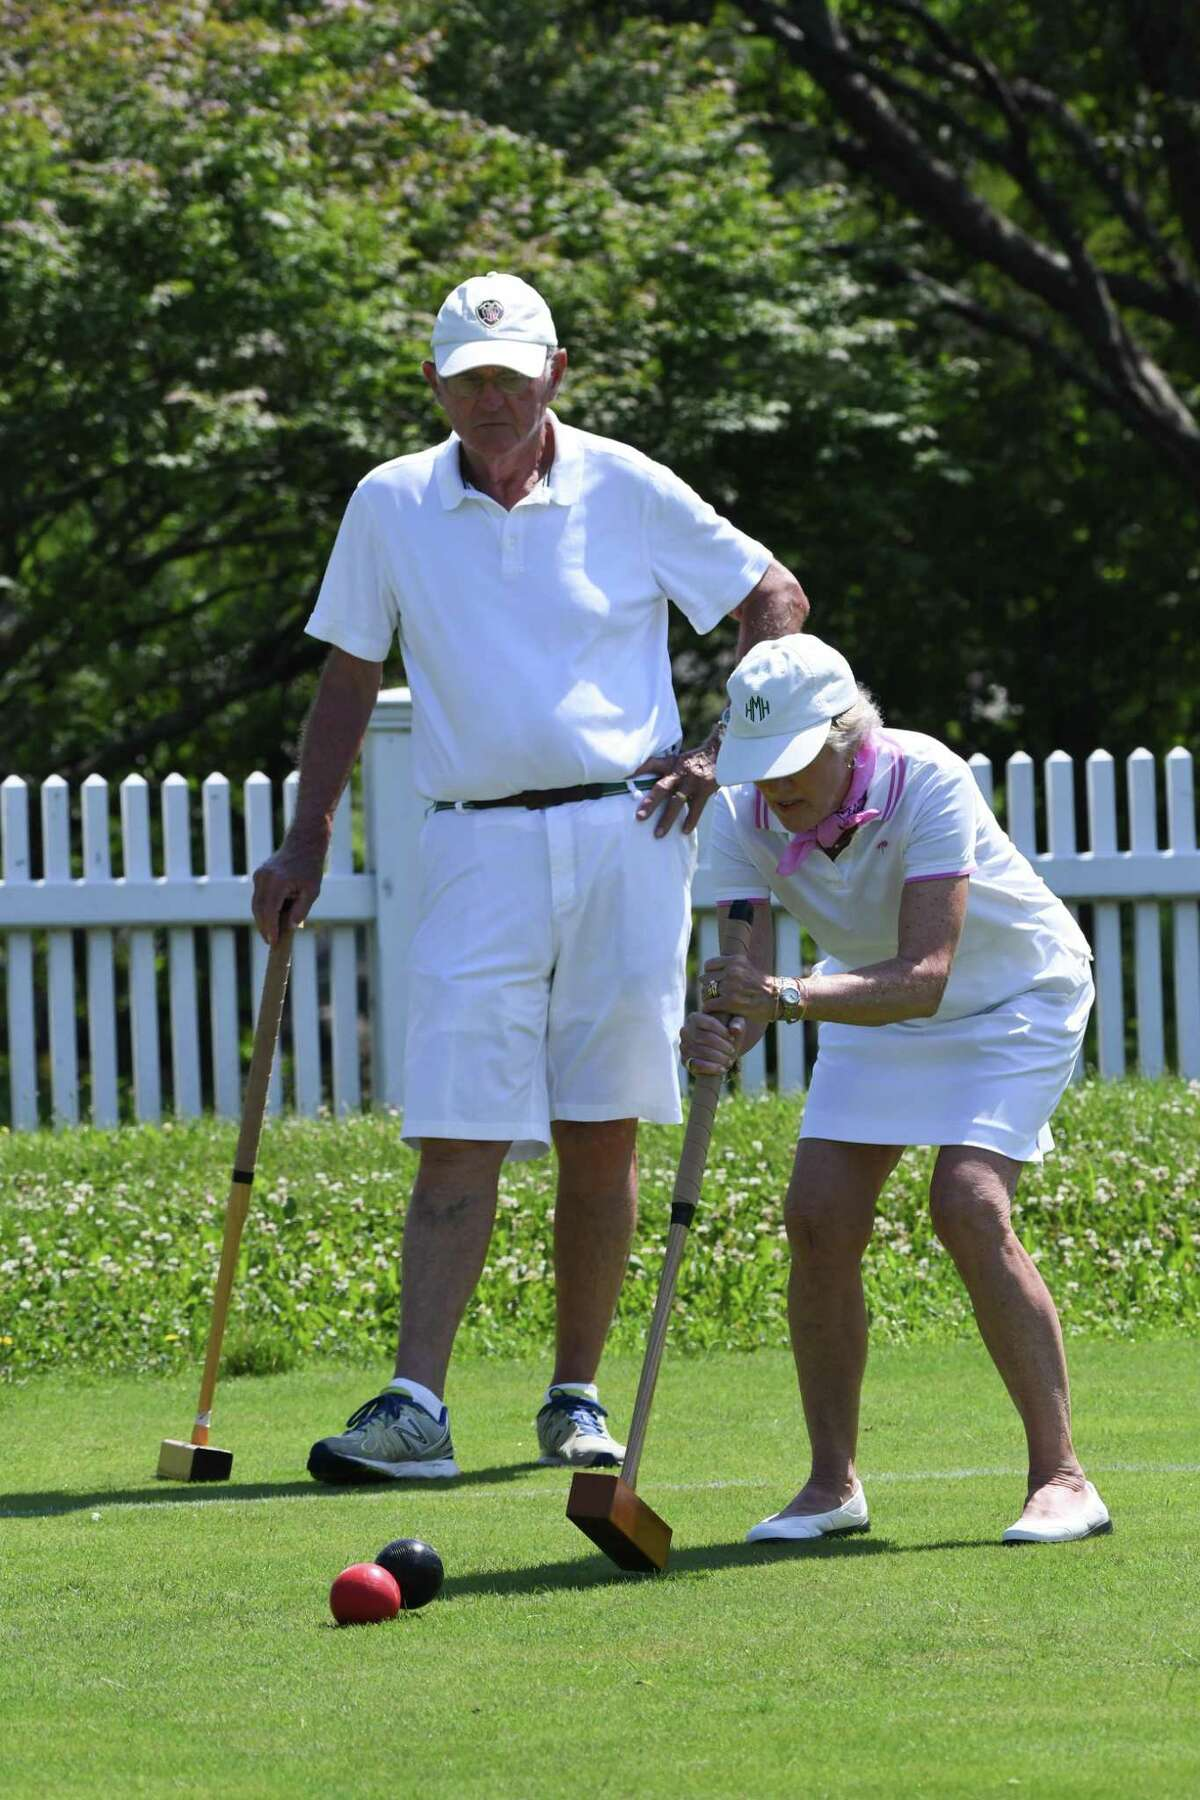 Ed Michaels, of Fairfield, watches his wife, Hilary, take a shot.